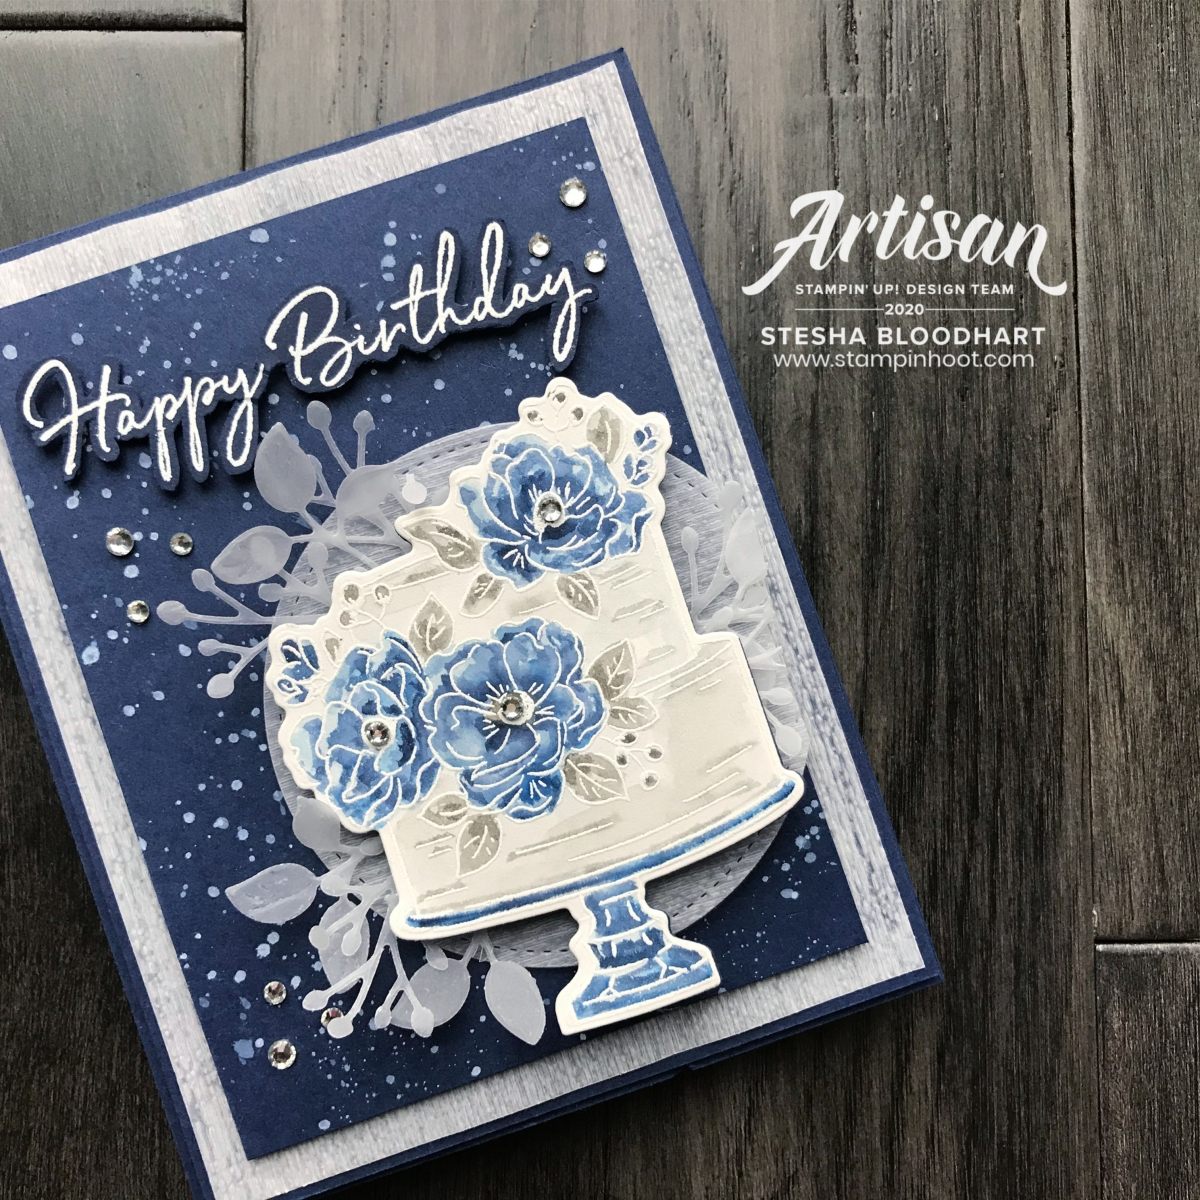 Birthday Dies Coordination Product by Stampin' Up! Created by Stesha Bloodhart, 2020 Artisan Design Team